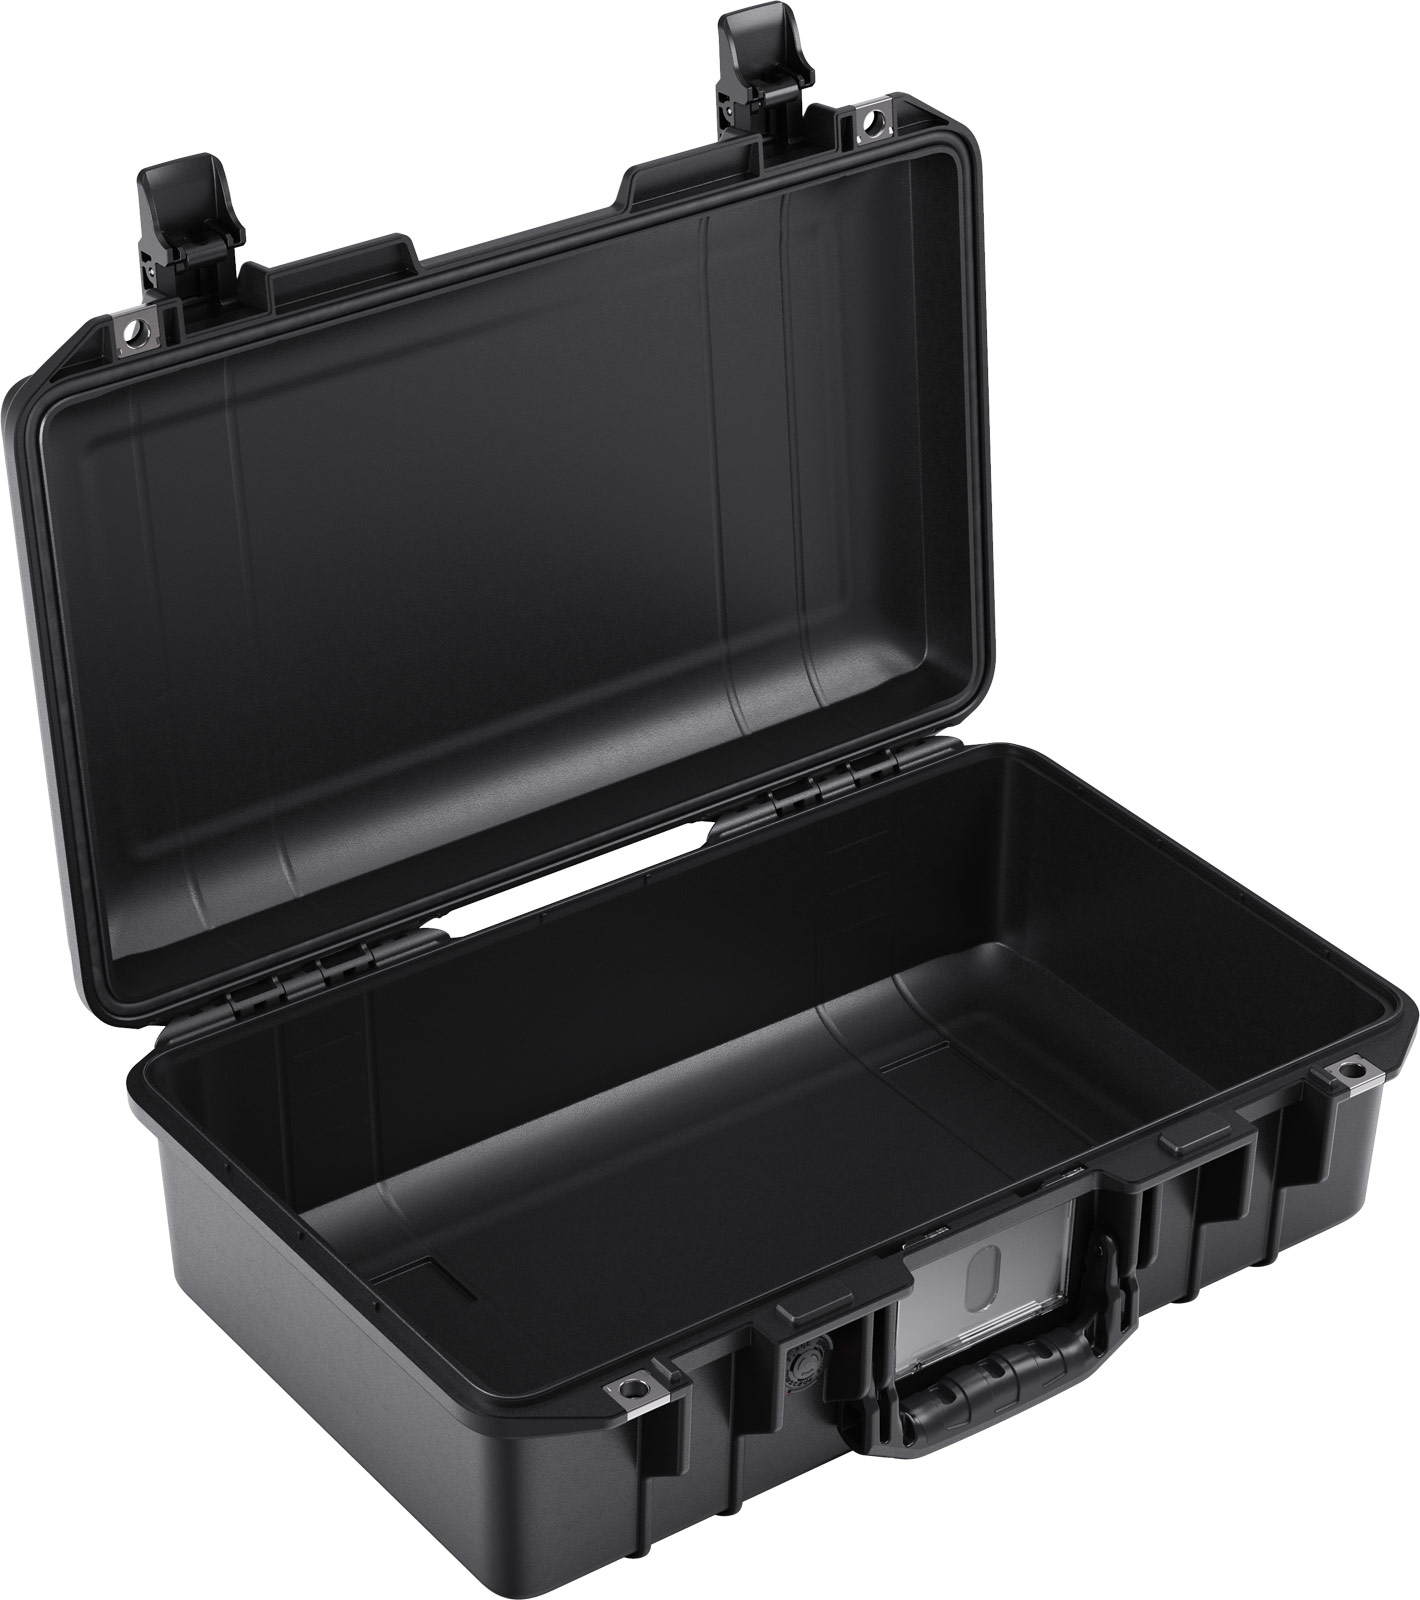 buy pelican air 1485 shop lightweight protective case